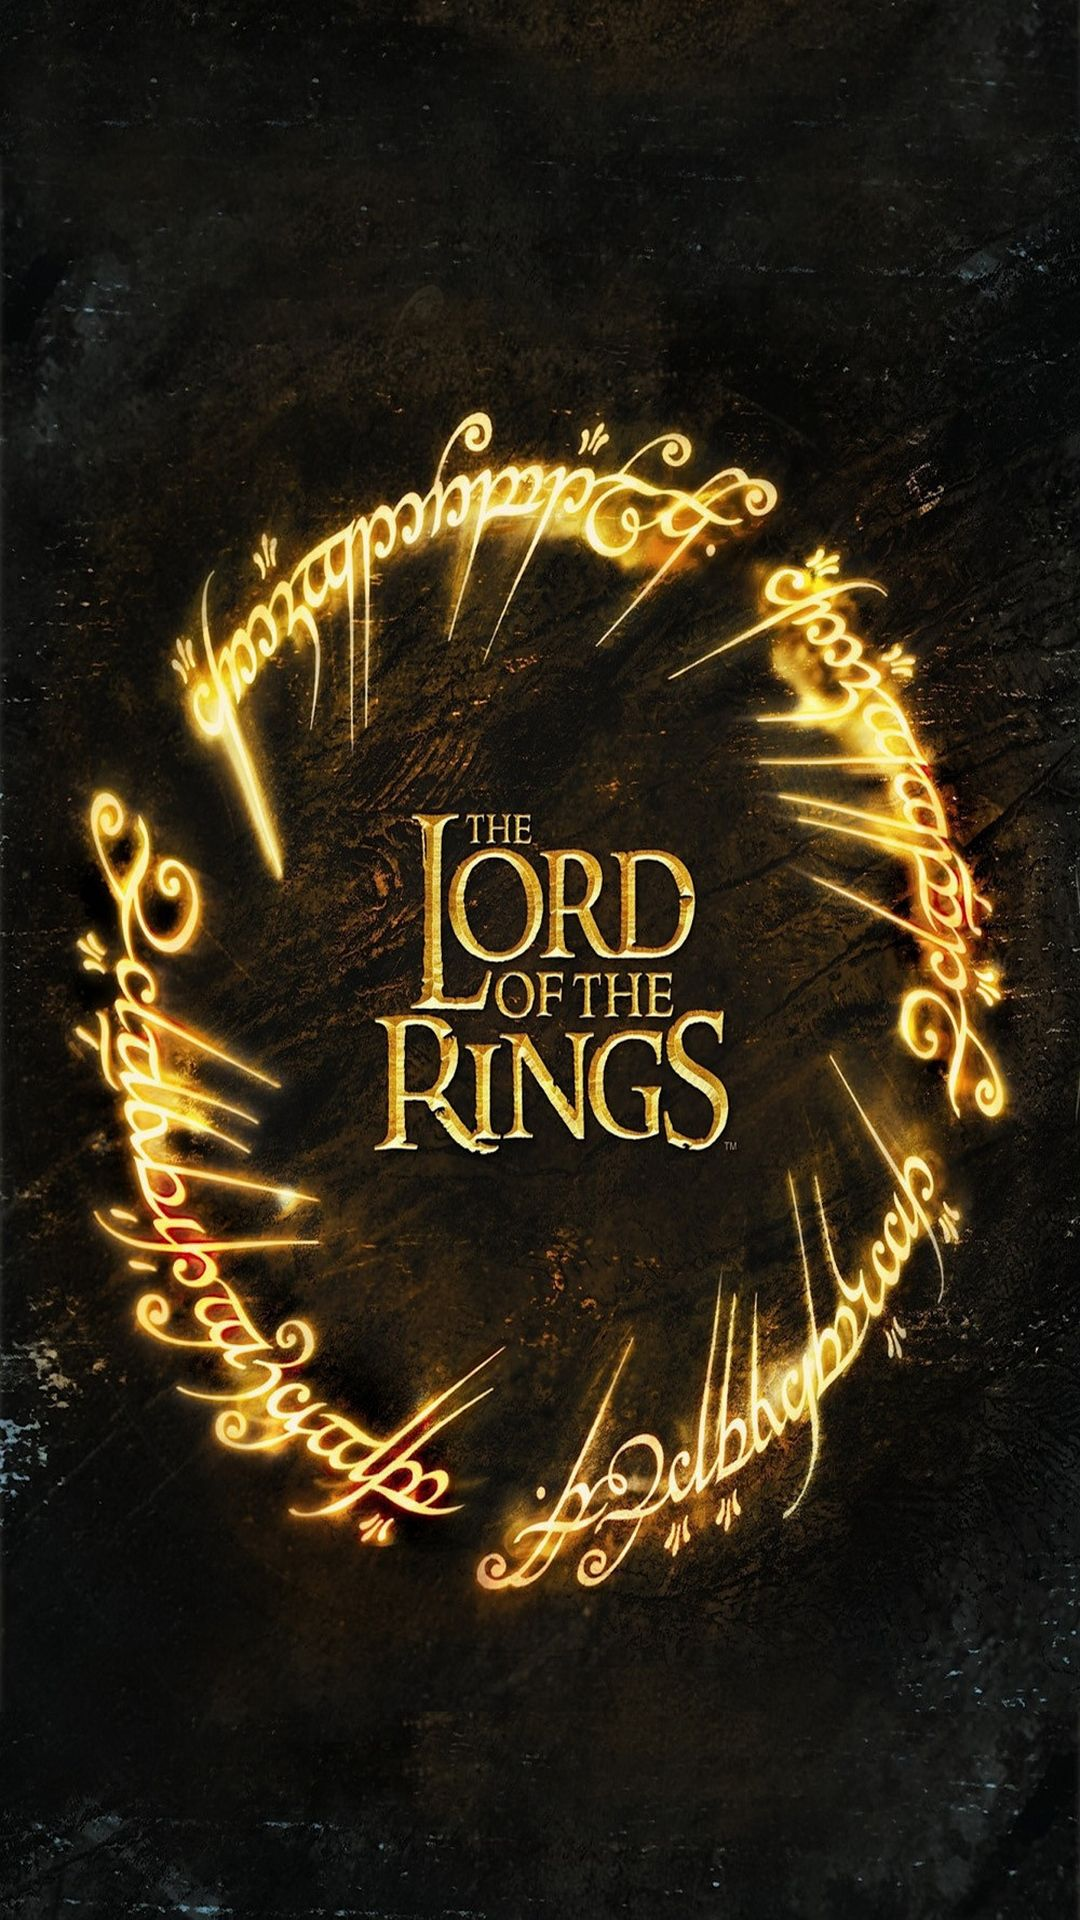 TAP AND GET THE FREE APP  Movies The Lord of the Rings Black                 TAP AND GET THE FREE APP  Movies The Lord of the Rings Black Gold Dark  Fantasy Poster Blockbuster Tolkien HD iPhone 6 plus Wallpaper